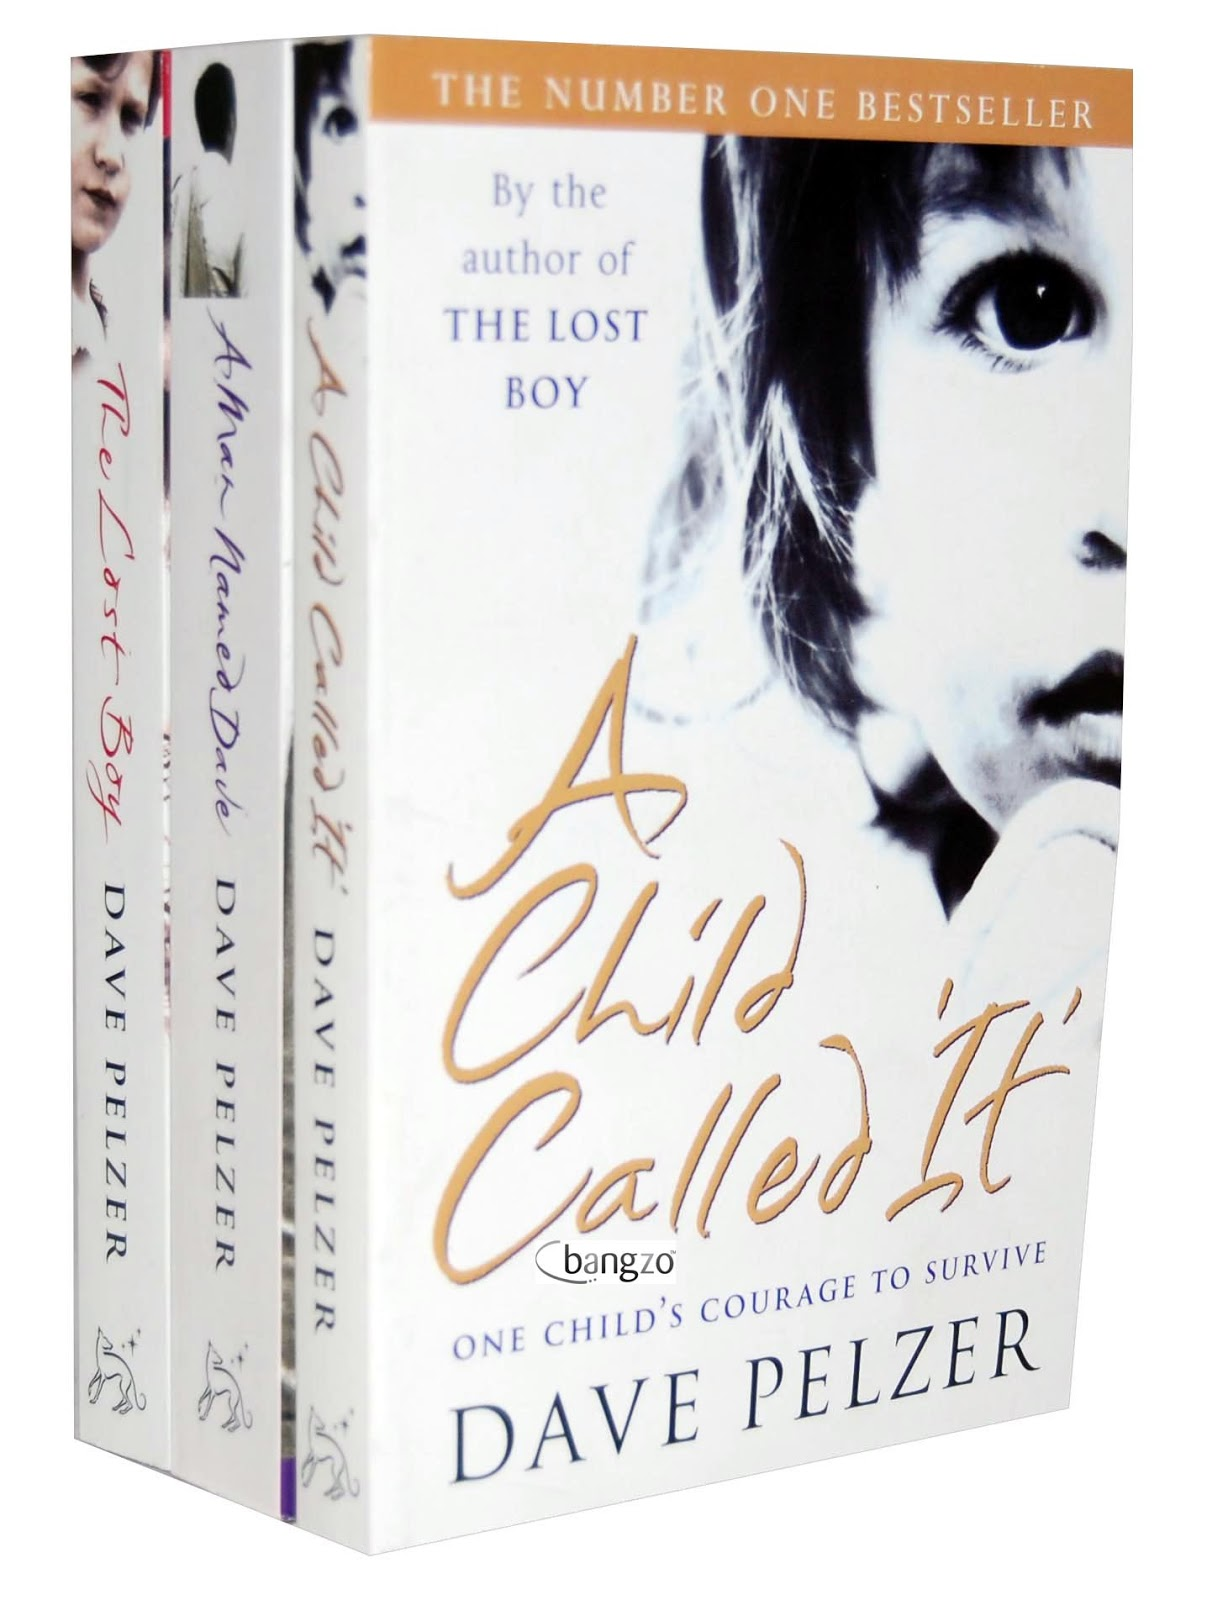 Dave pelzer series a child called it the lost boy a man named dave i